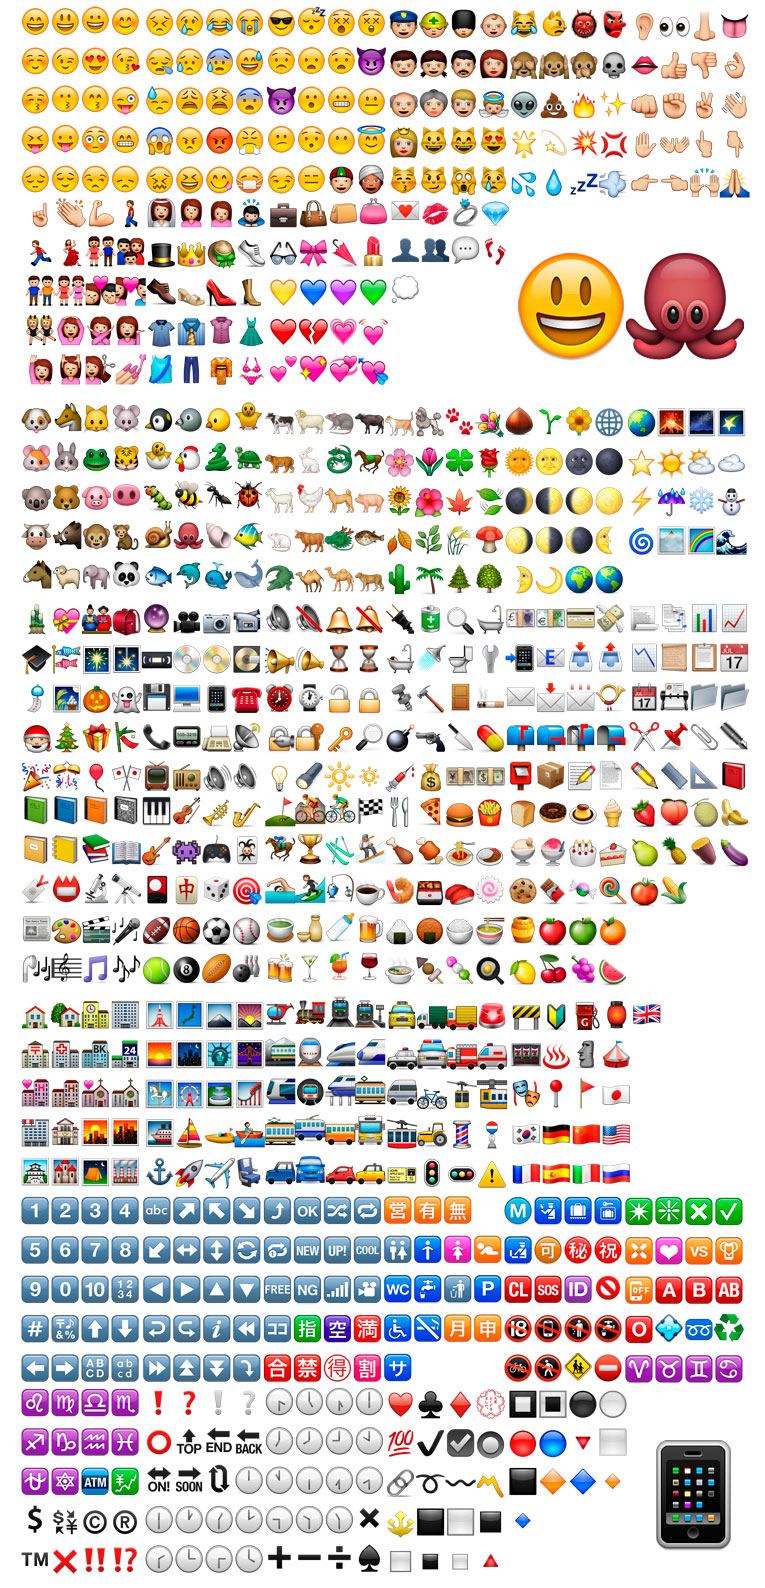 Descargar emojis de whatsapp en vector y png for Emoticones para instagram